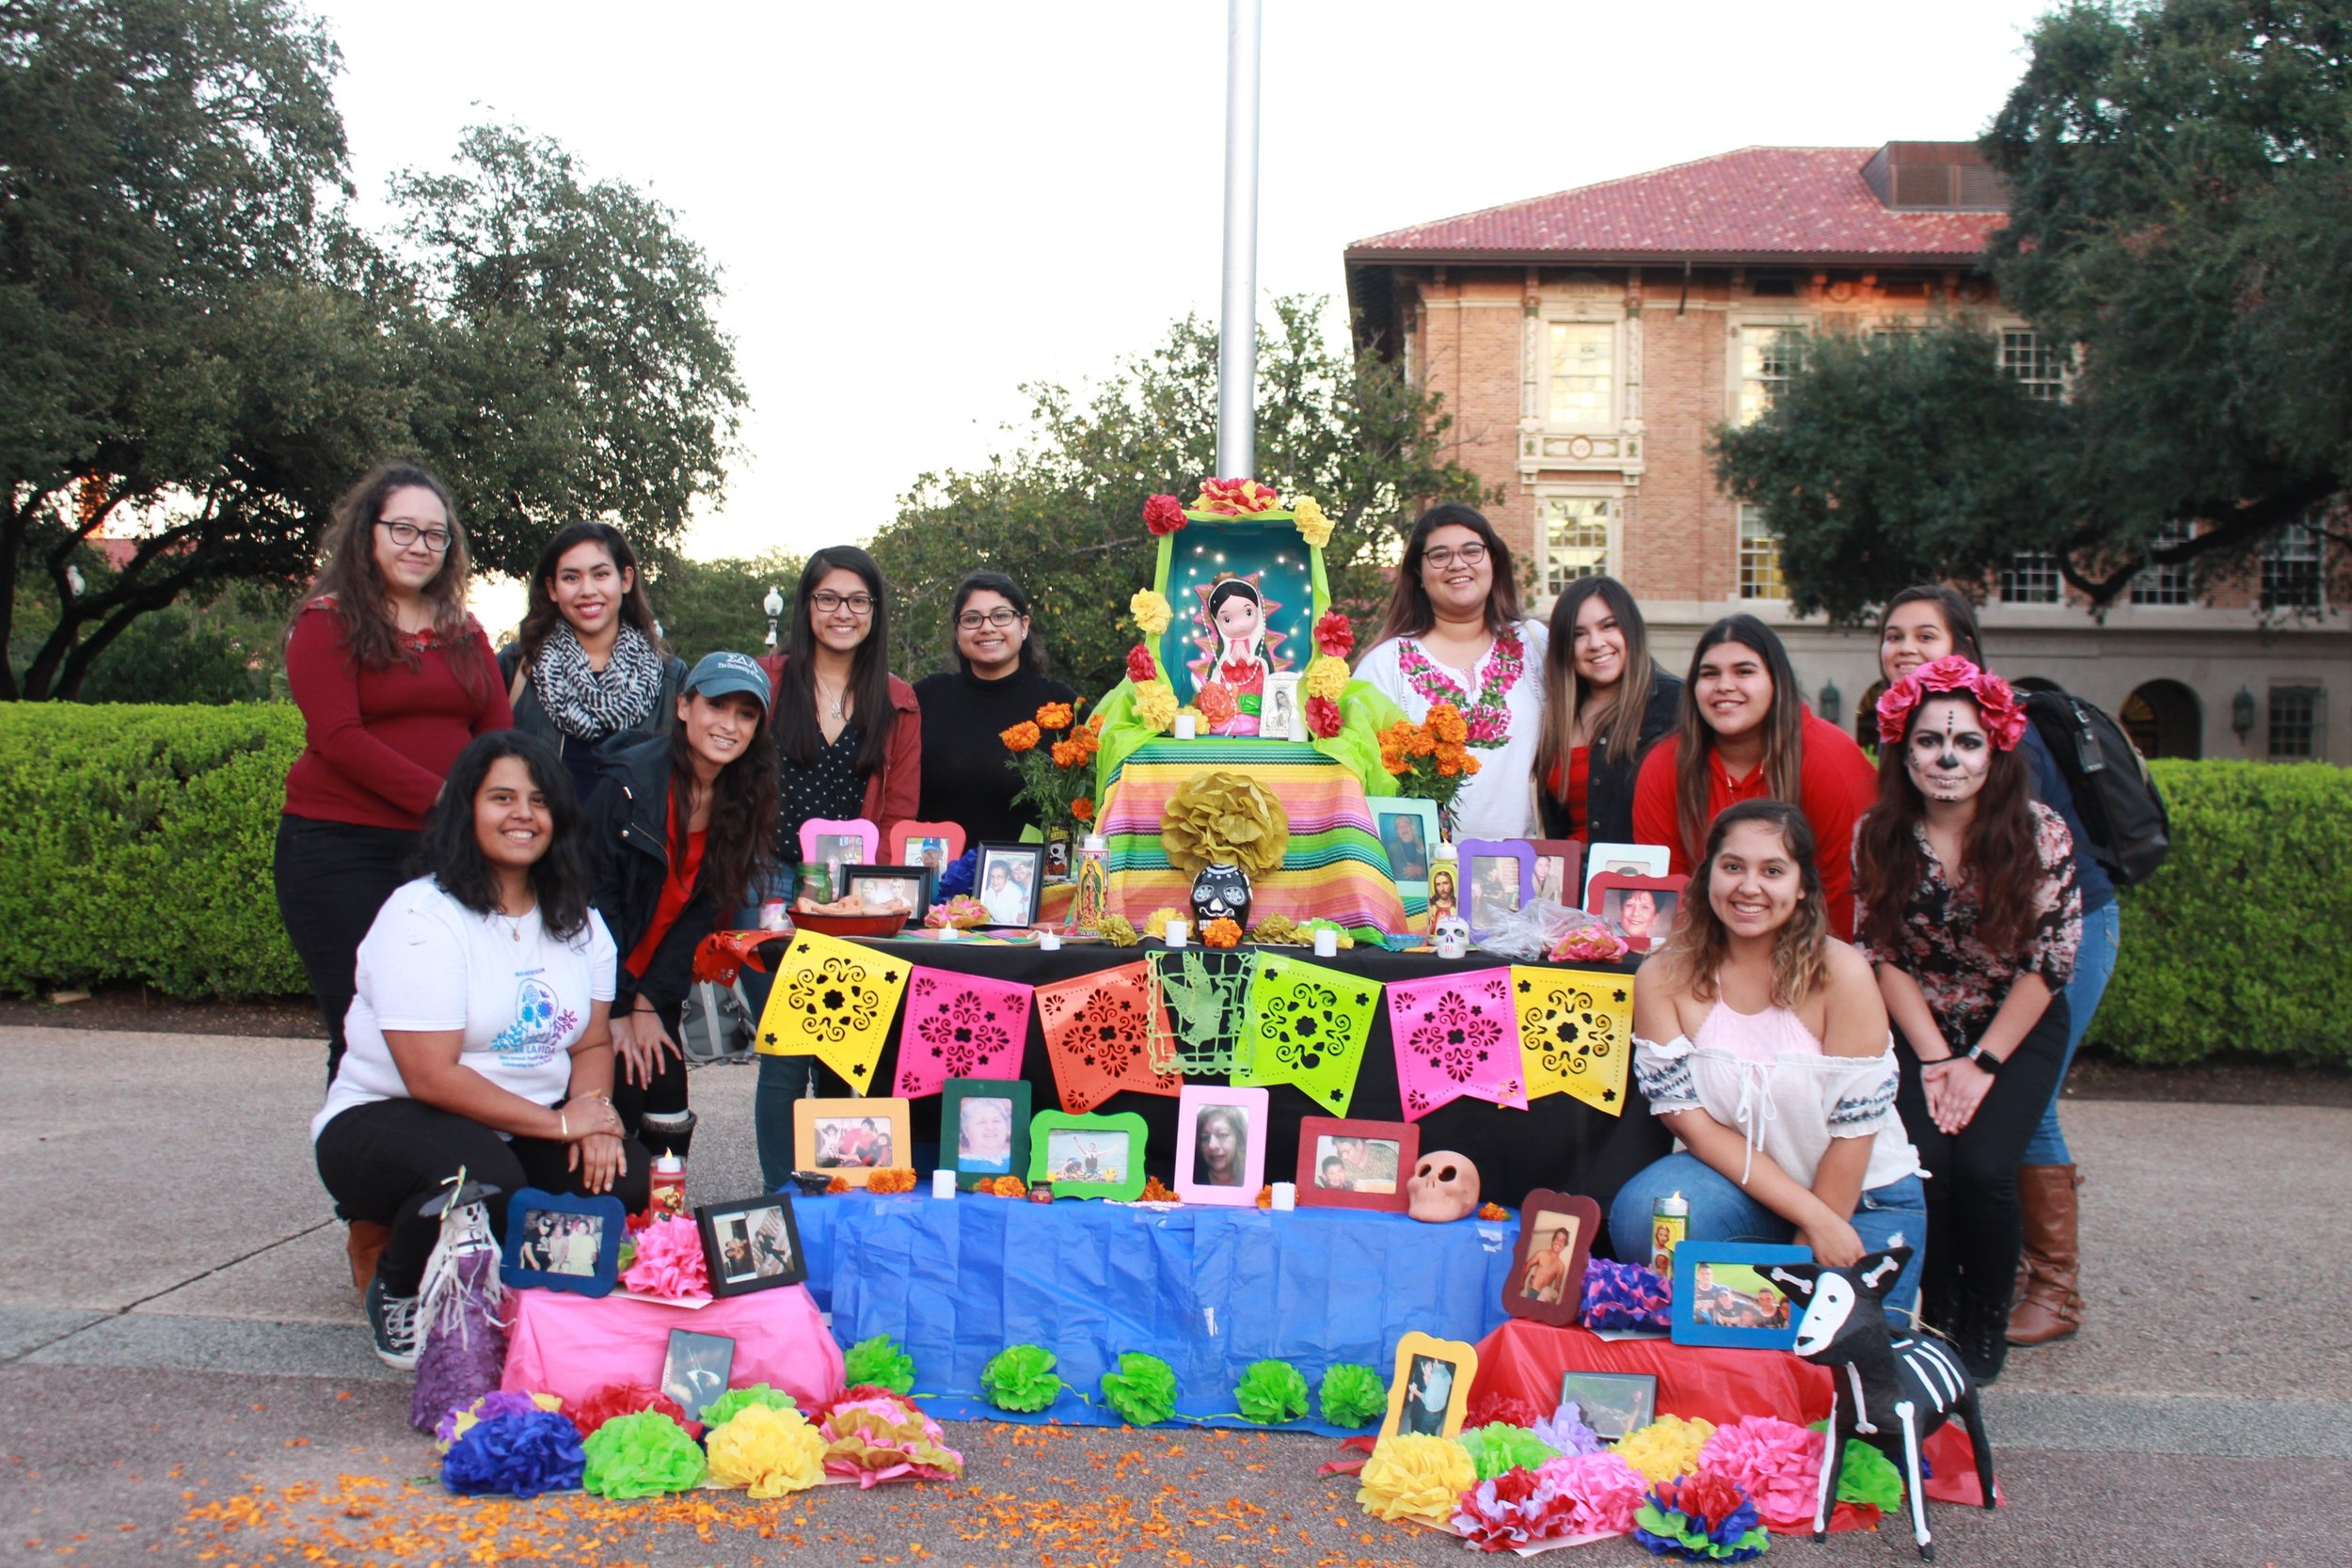 The women of Sigma Delta Lambda emphasize that their altar is more than just a theme. Rather, it shows a personal reflection inside each of their lives as they display those who have passed.